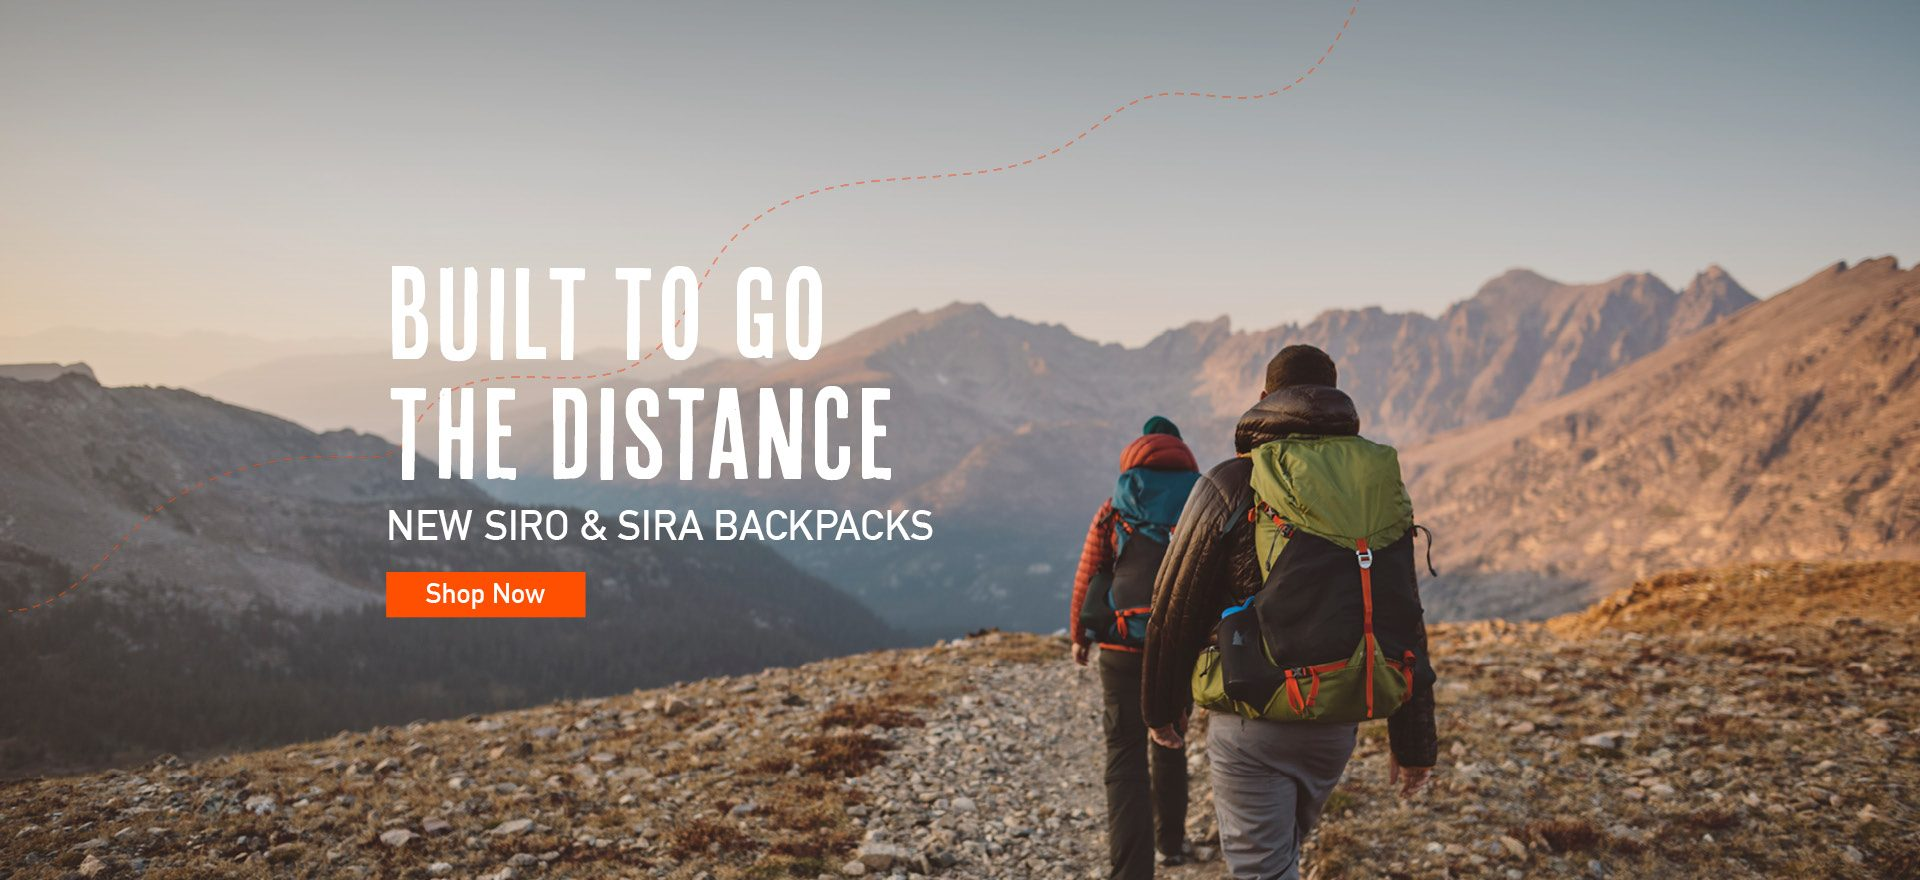 New Siro and Sira Backpacks Now Available!